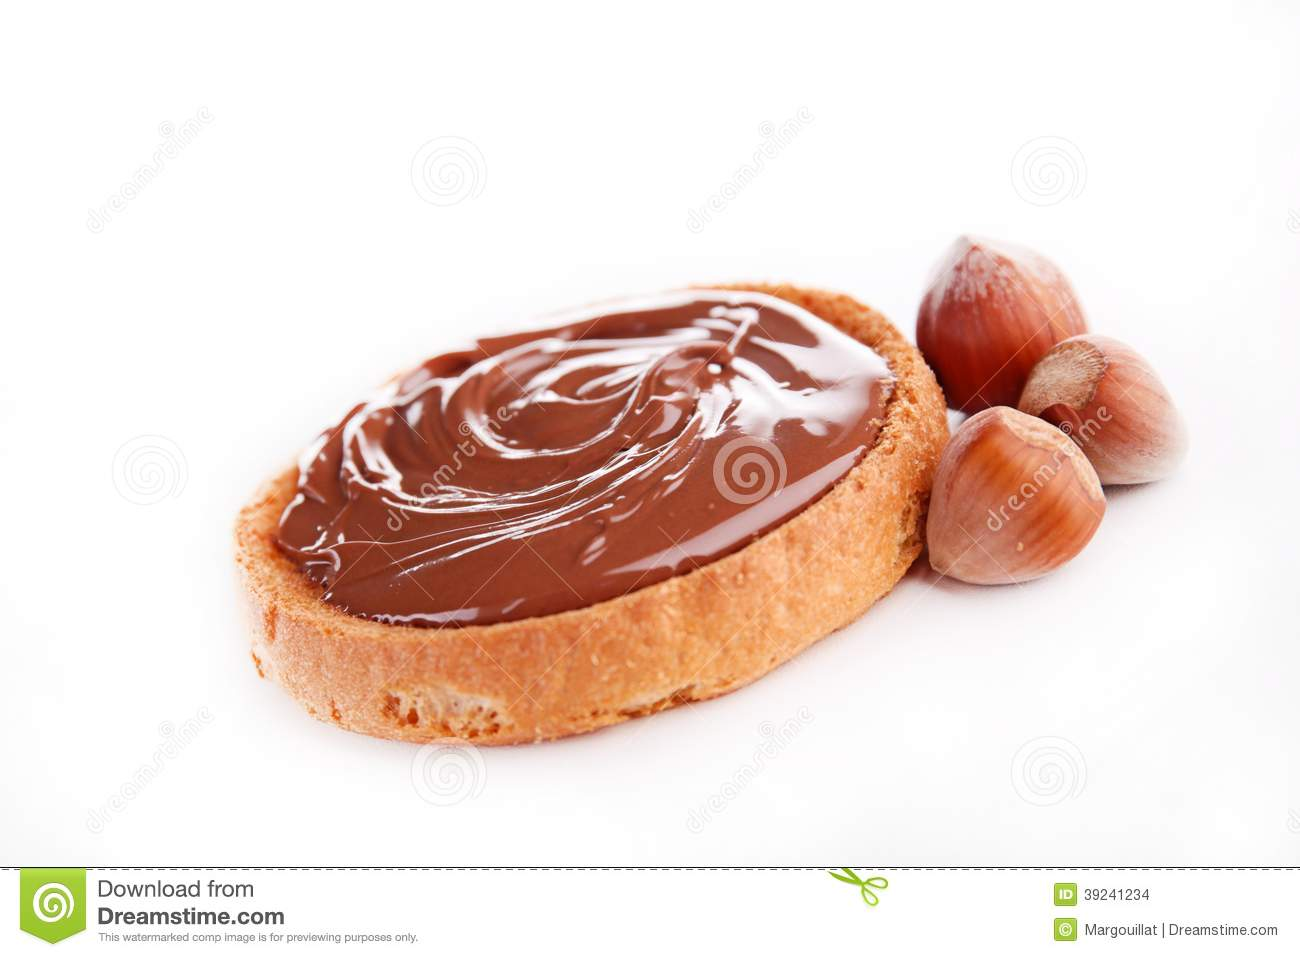 Bread And Chocolate Spread Stock Photo - Image: 39241234